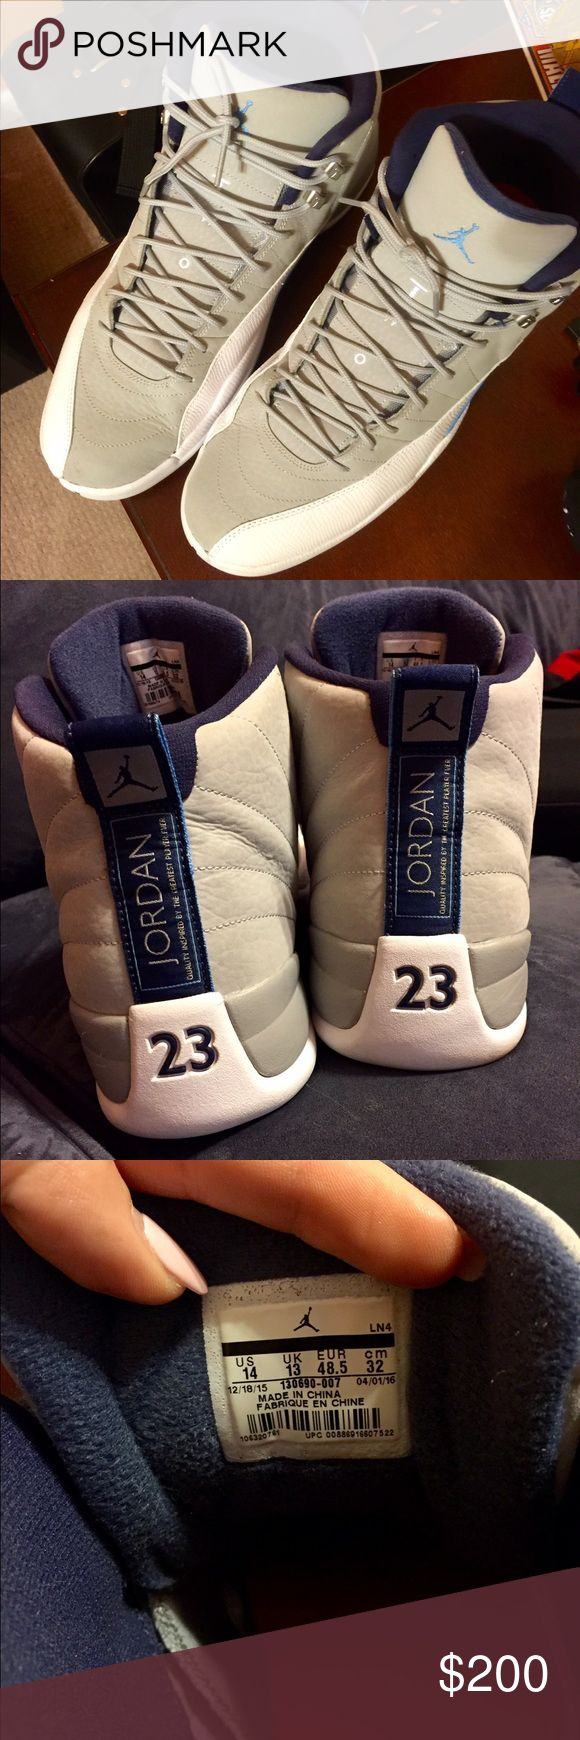 Jordan Retro 12's -- Size 14! Authentic men's Jordan Retro 12's in a size 14. Hard size to find! Only worn once, in great shape. Wolf grey/university blue/white in color. No damage or wear and tear at all! 😊 Jordan Shoes Sneakers